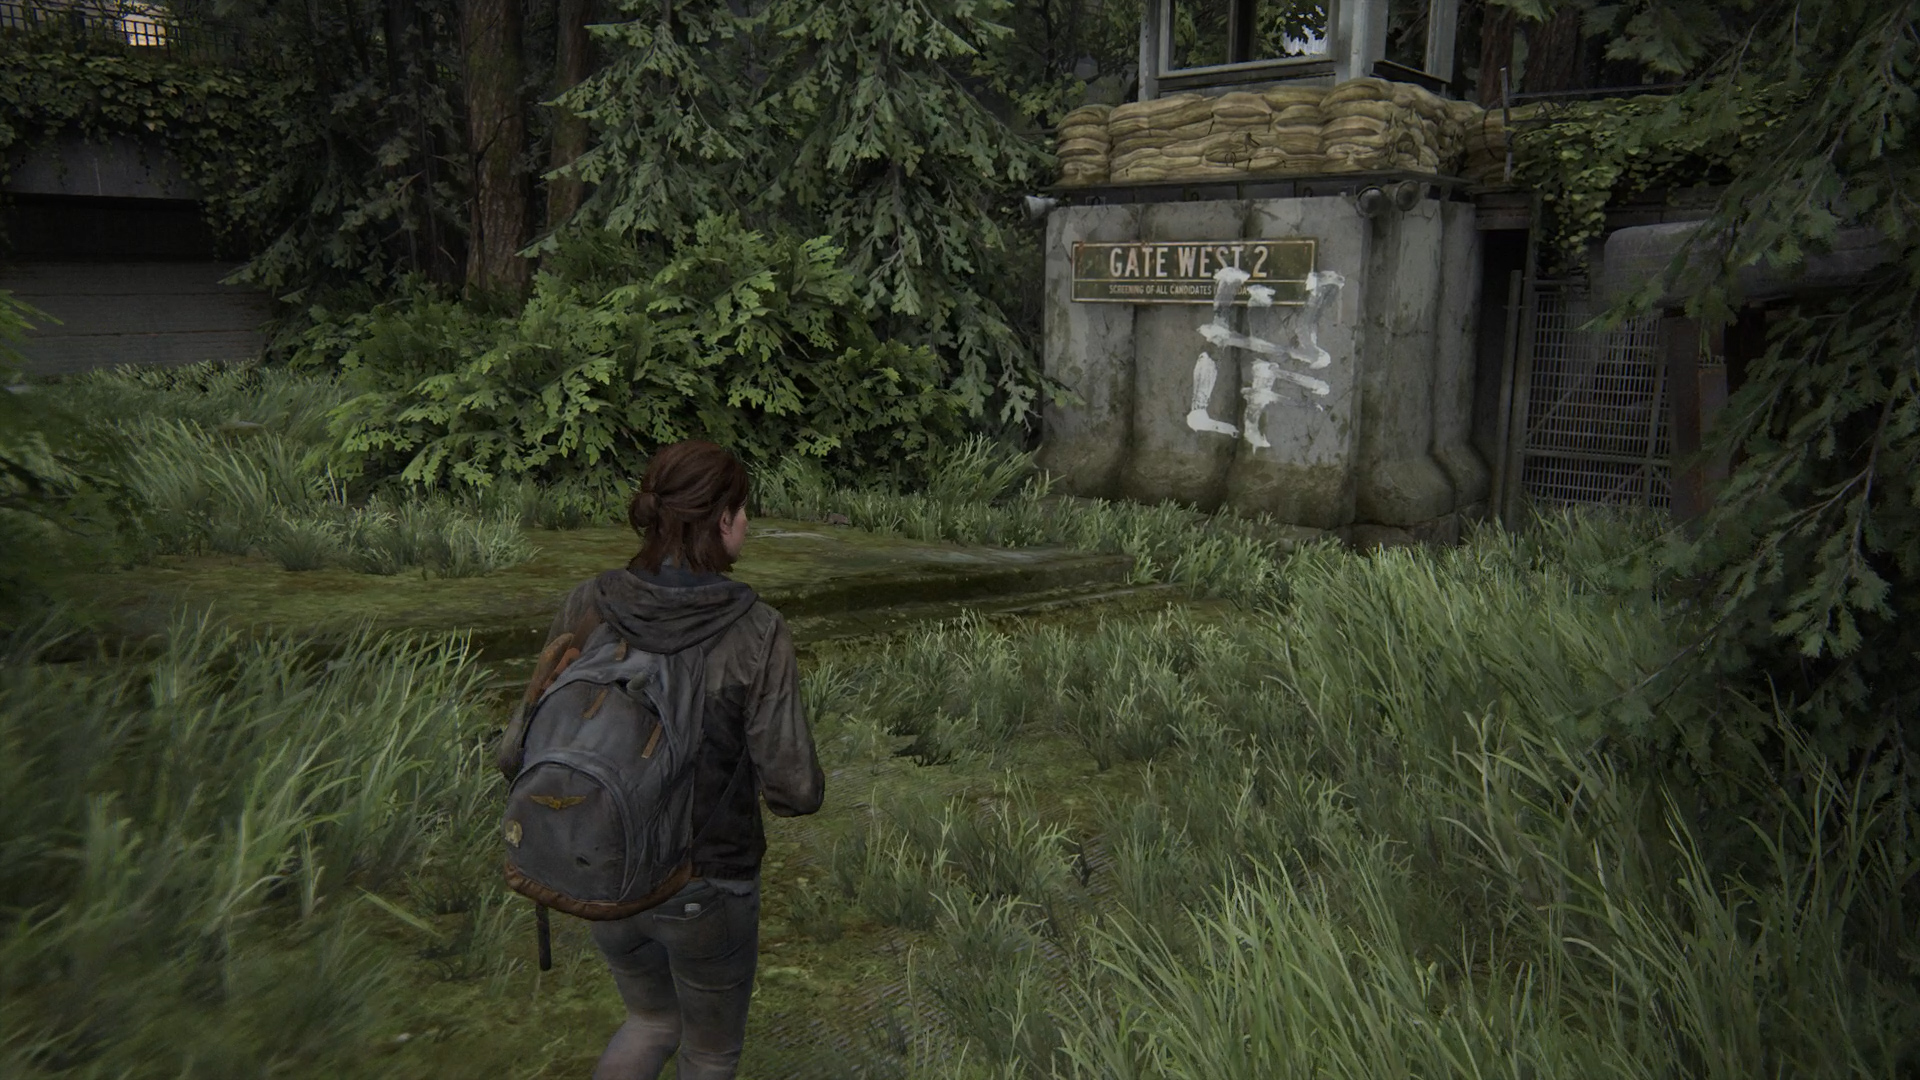 Trading Card locations in Tlou2 - Flo